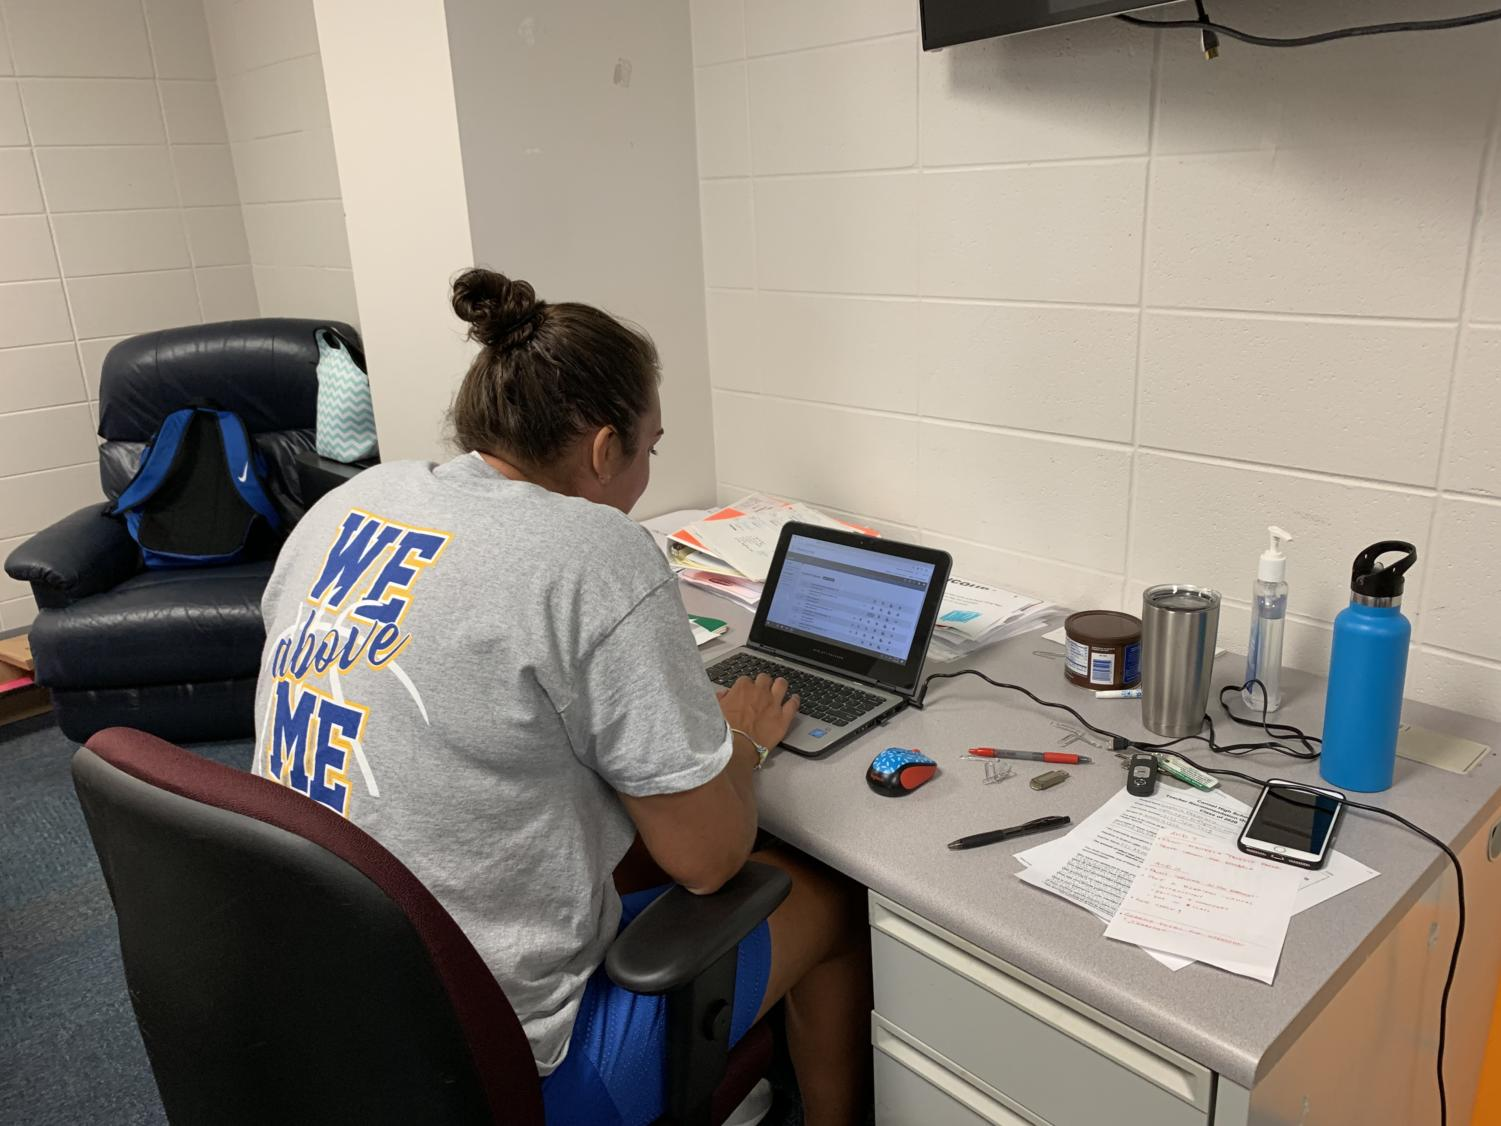 """Erin Modisett, sponsor of Big Game Club, thinks about ways to promote Big Game Club. """"We have a lot of social media accounts. If students are interested, they should try talking to myself of Mr. Cluver or search up Greyhound Nation on Twitter,"""" Modisett said."""